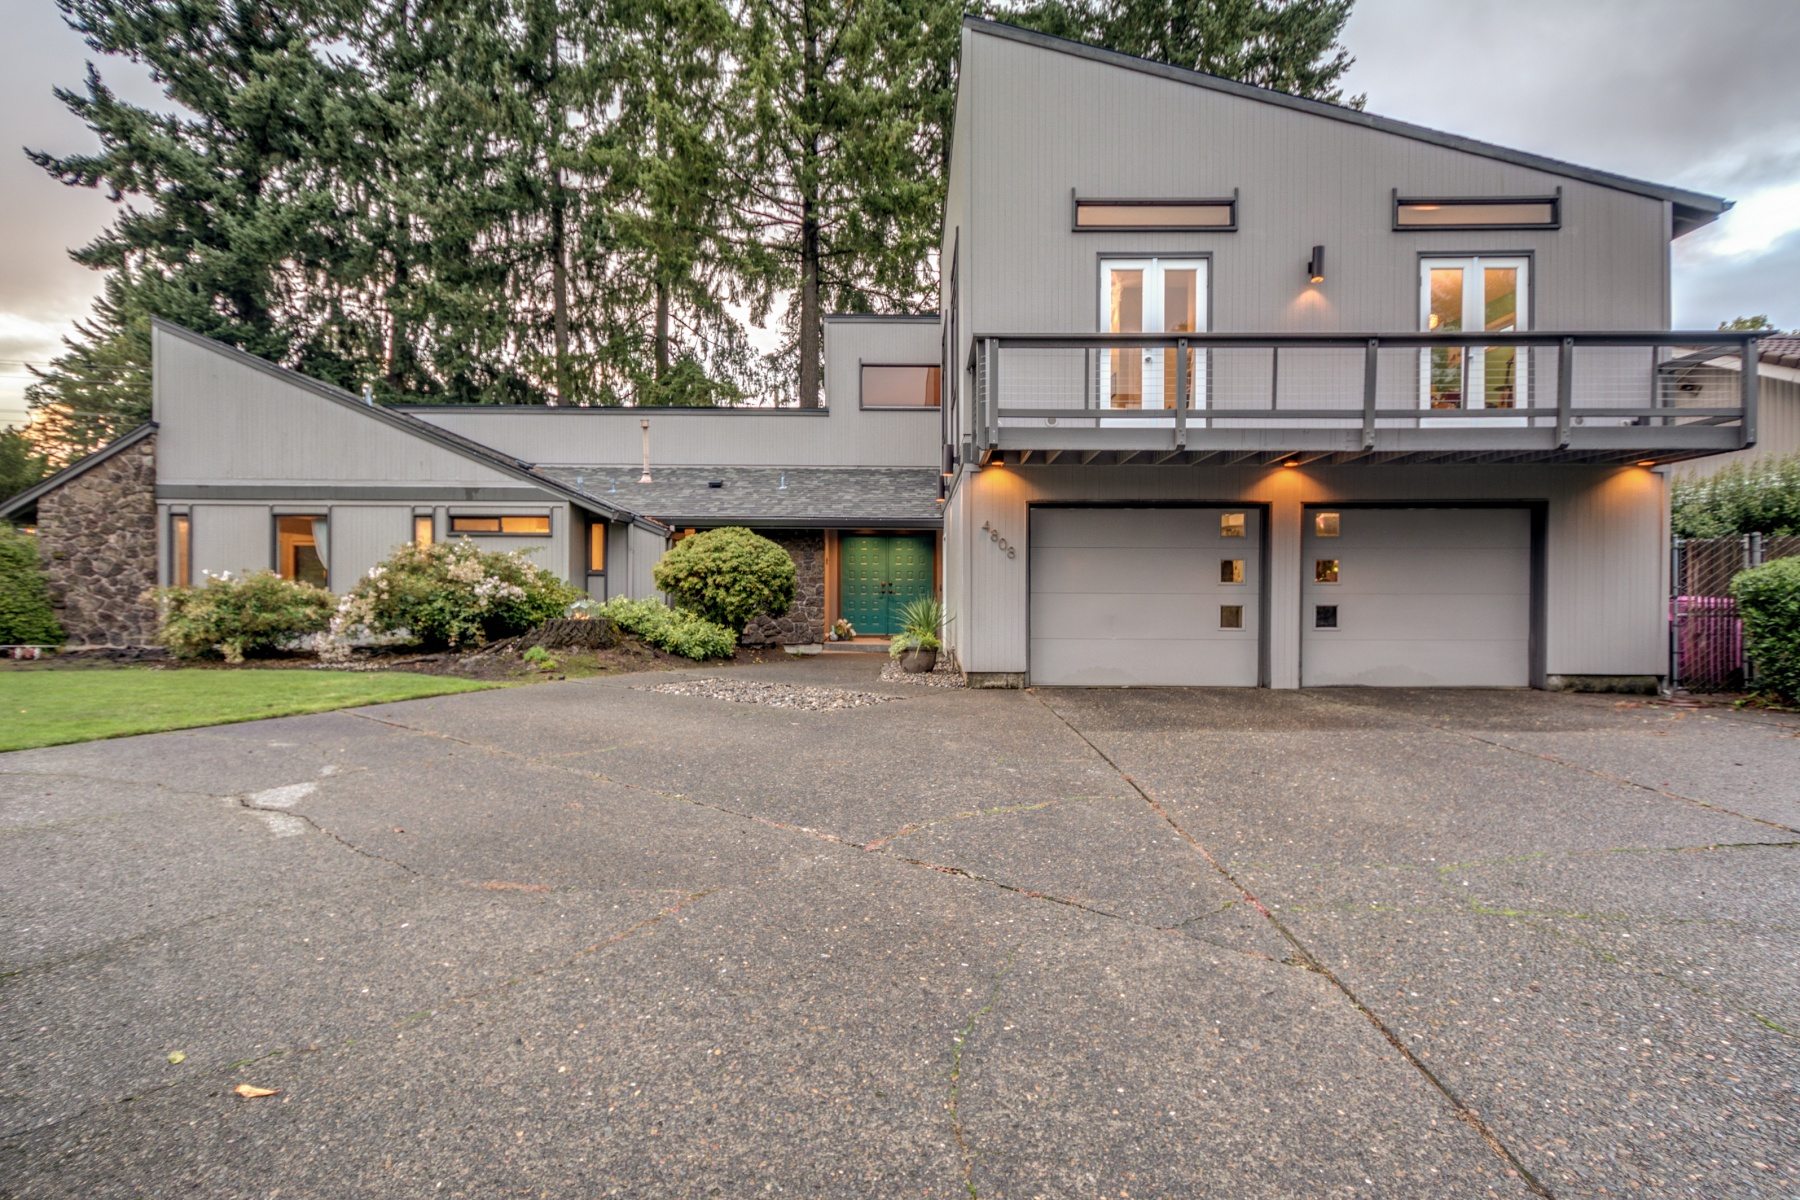 for Sale at 4808 Willamette Dr Vancouver, Washington, 98661 United States